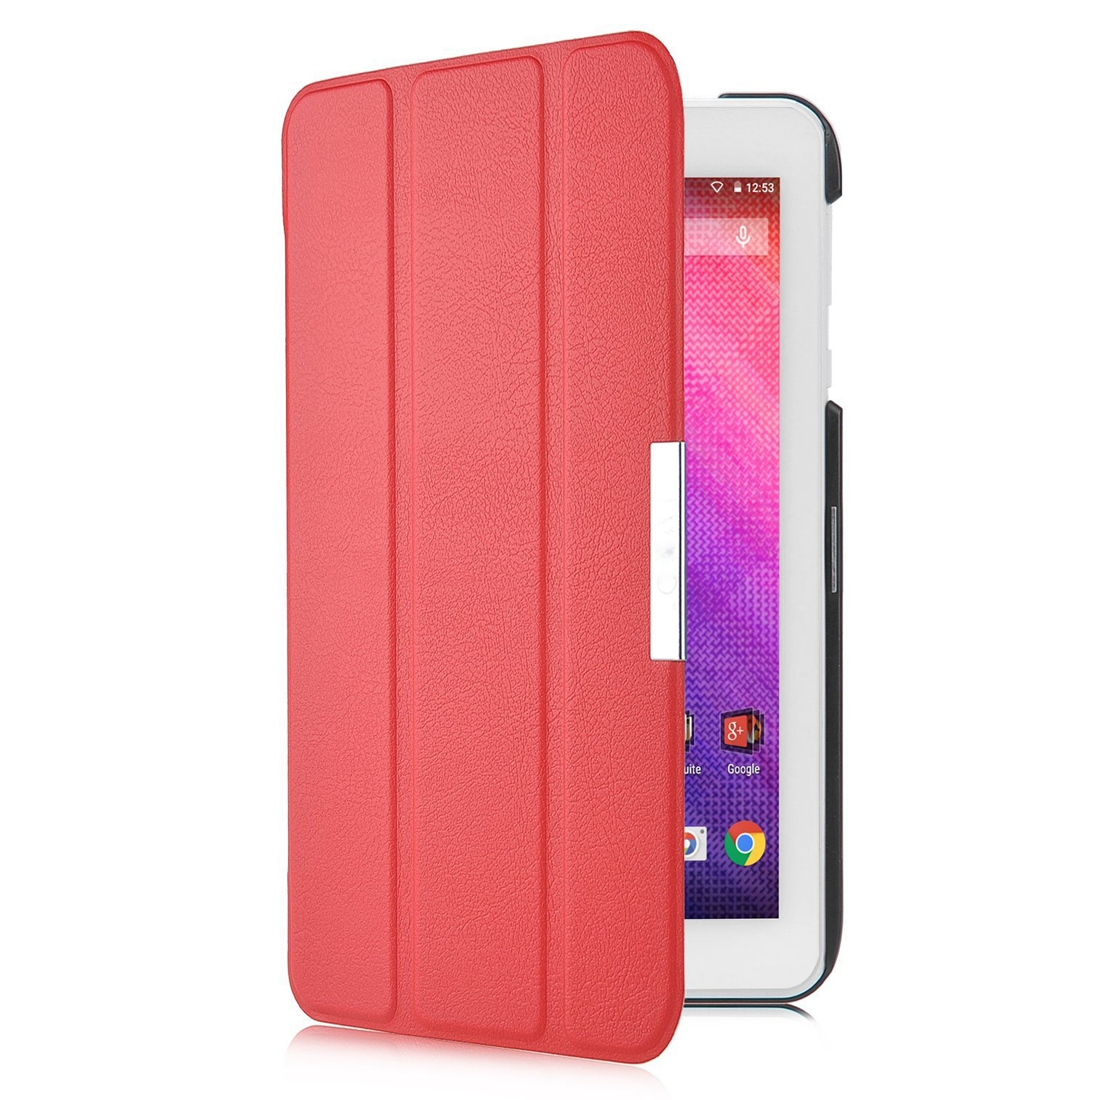 Slim Smart Cover Case for Acer Iconia One B1-770 7-Inch Tablet(Red)